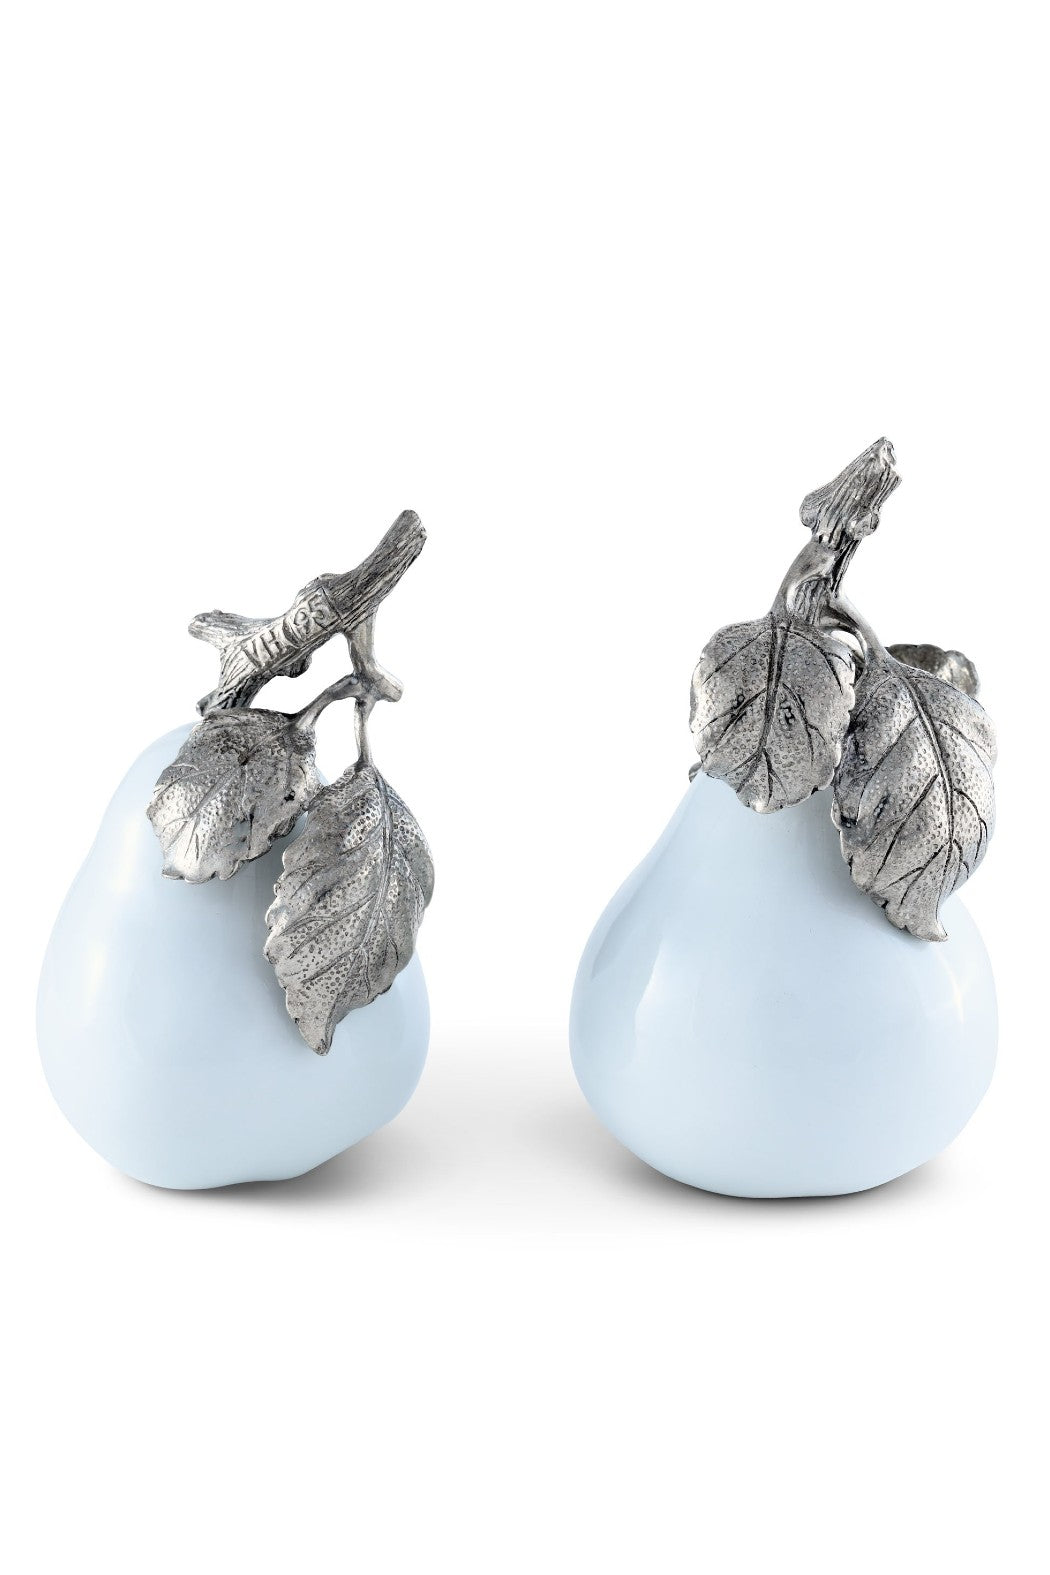 Vagabond House Pear Salt & Pepper Shakers